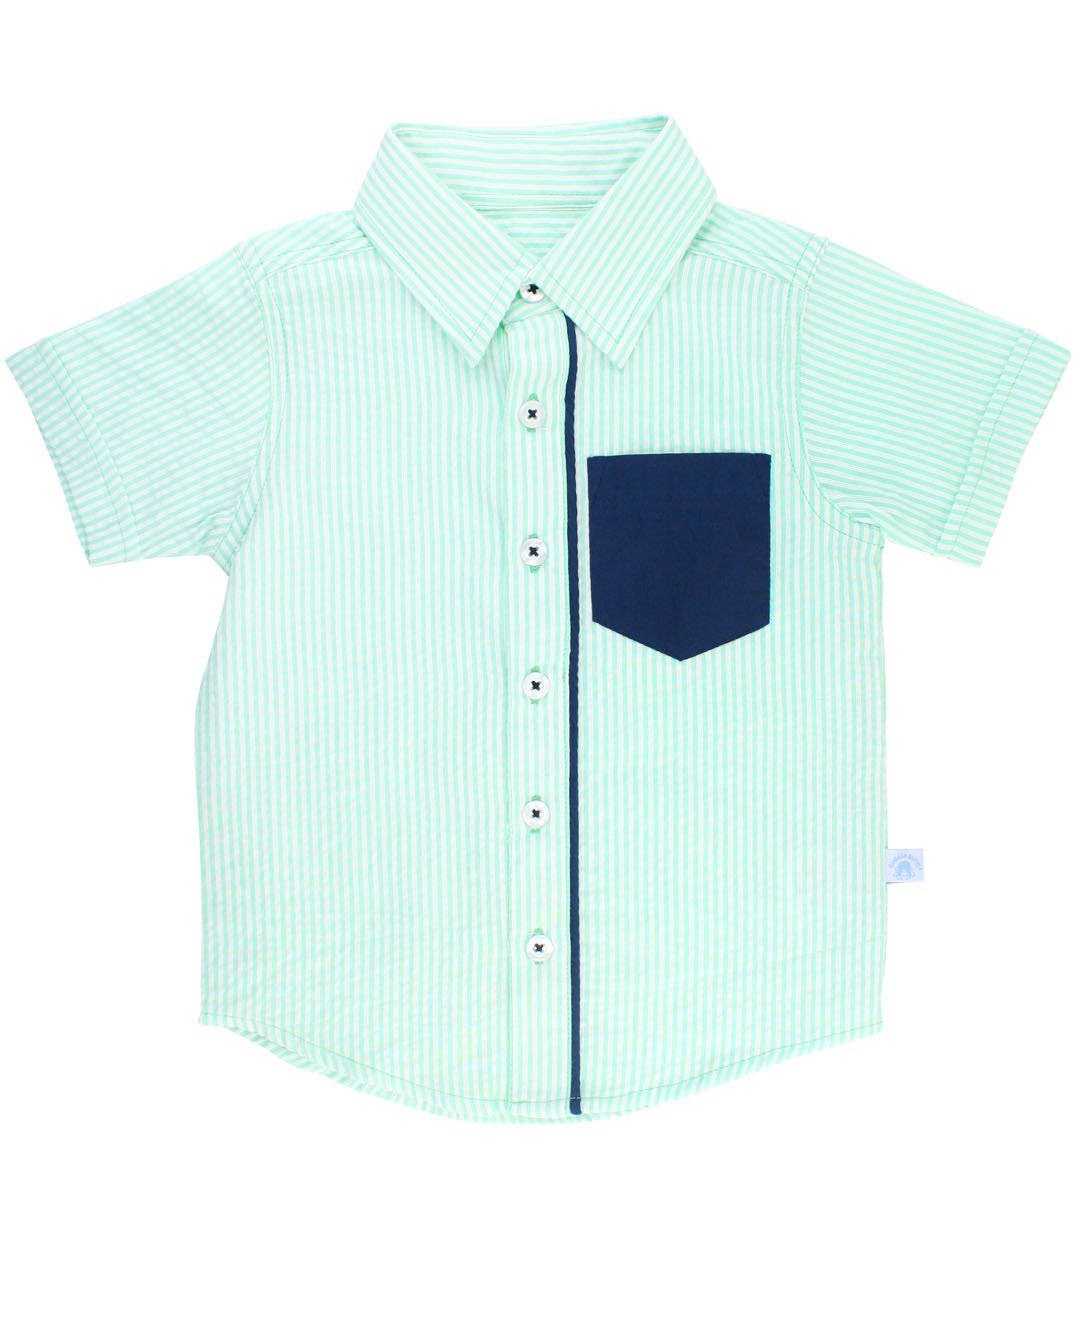 RuggedButts Baby/Toddler Boys Mint Seersucker Short Sleeve Button Down - 18-24m by RuggedButts